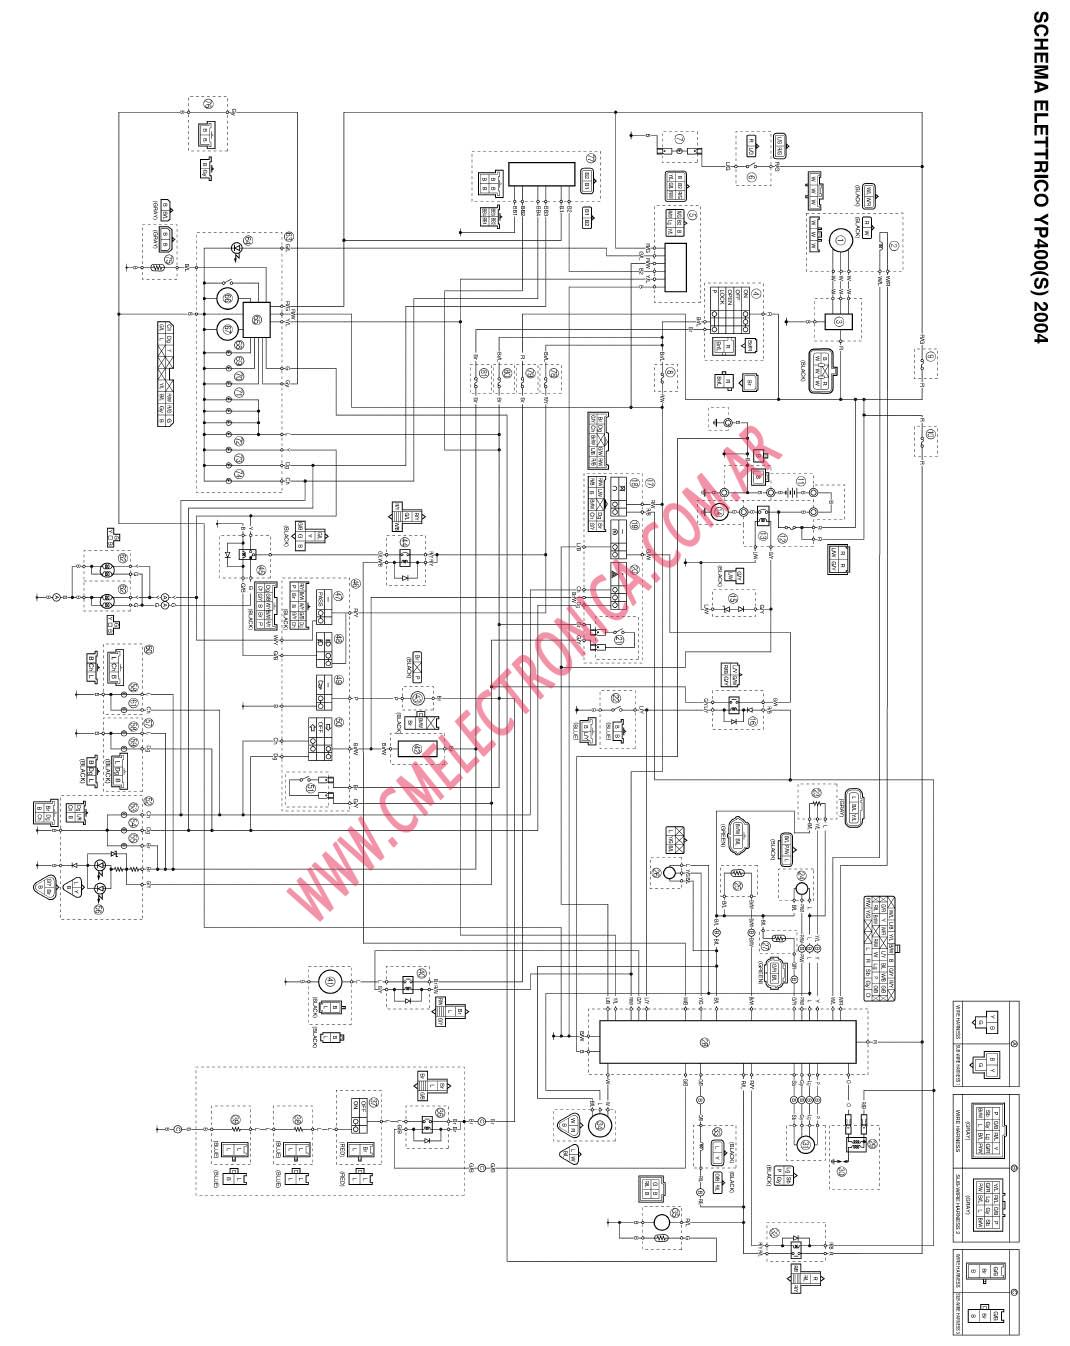 electrical wiring diagram of suzuki gn400 suzuki sv650